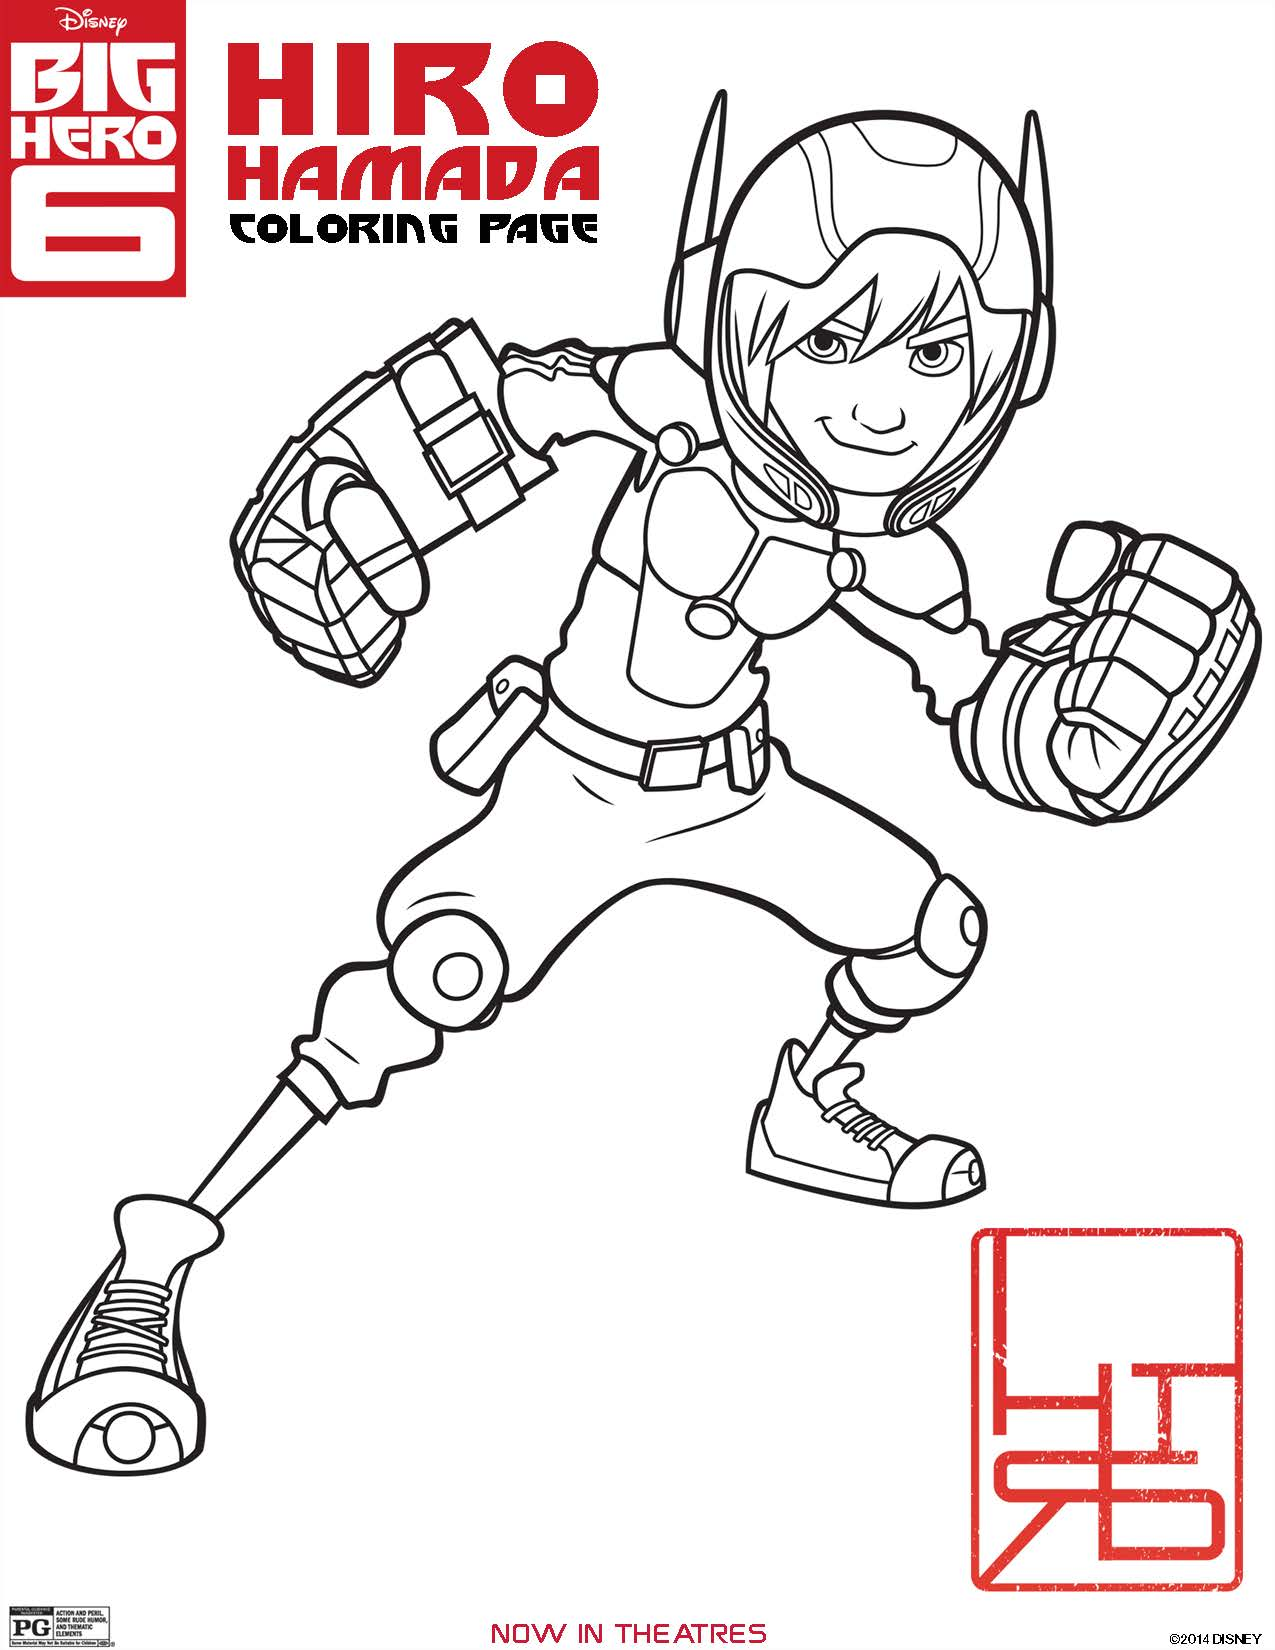 Big Hero 6 Coloring Pages And Printables